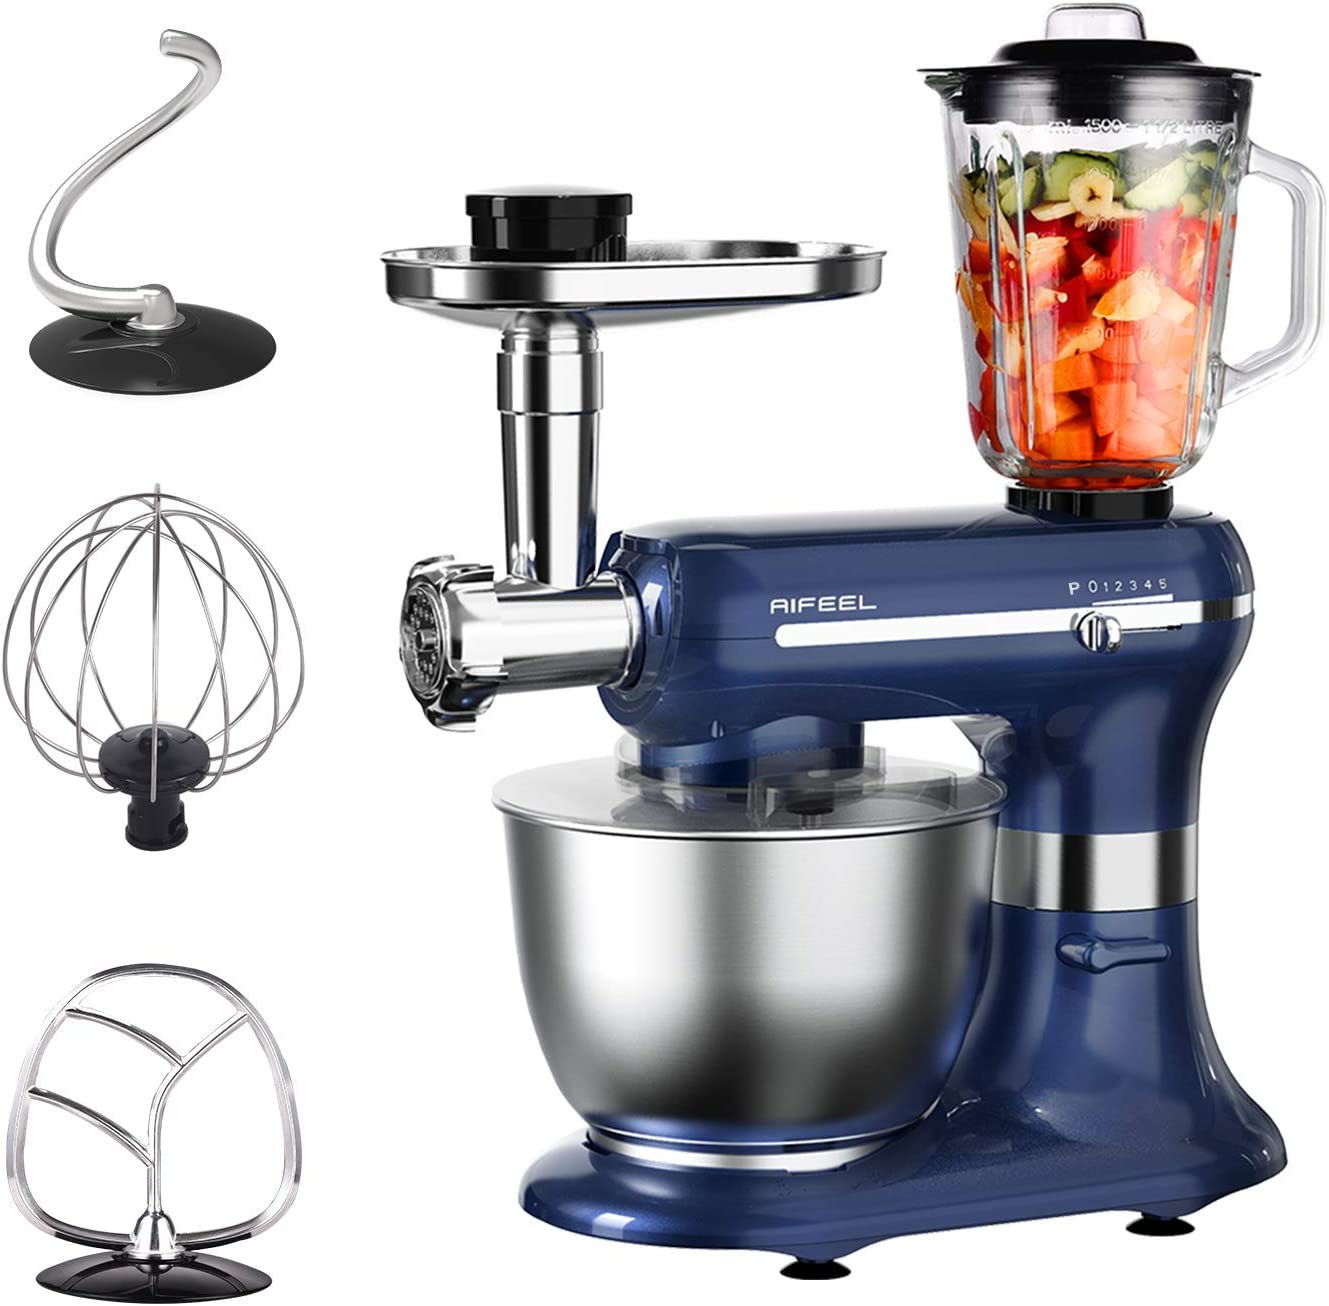 Aifeel Kitchen Mixers - 1200W 6 in 1 Electric Multifunctional Stand Mixer - with 5 L Food Grade Bowl, 3 Mixing Accessories, Food Grinder, Blender, Sausage Accessories - 5 Speed Settings (Retro blue)